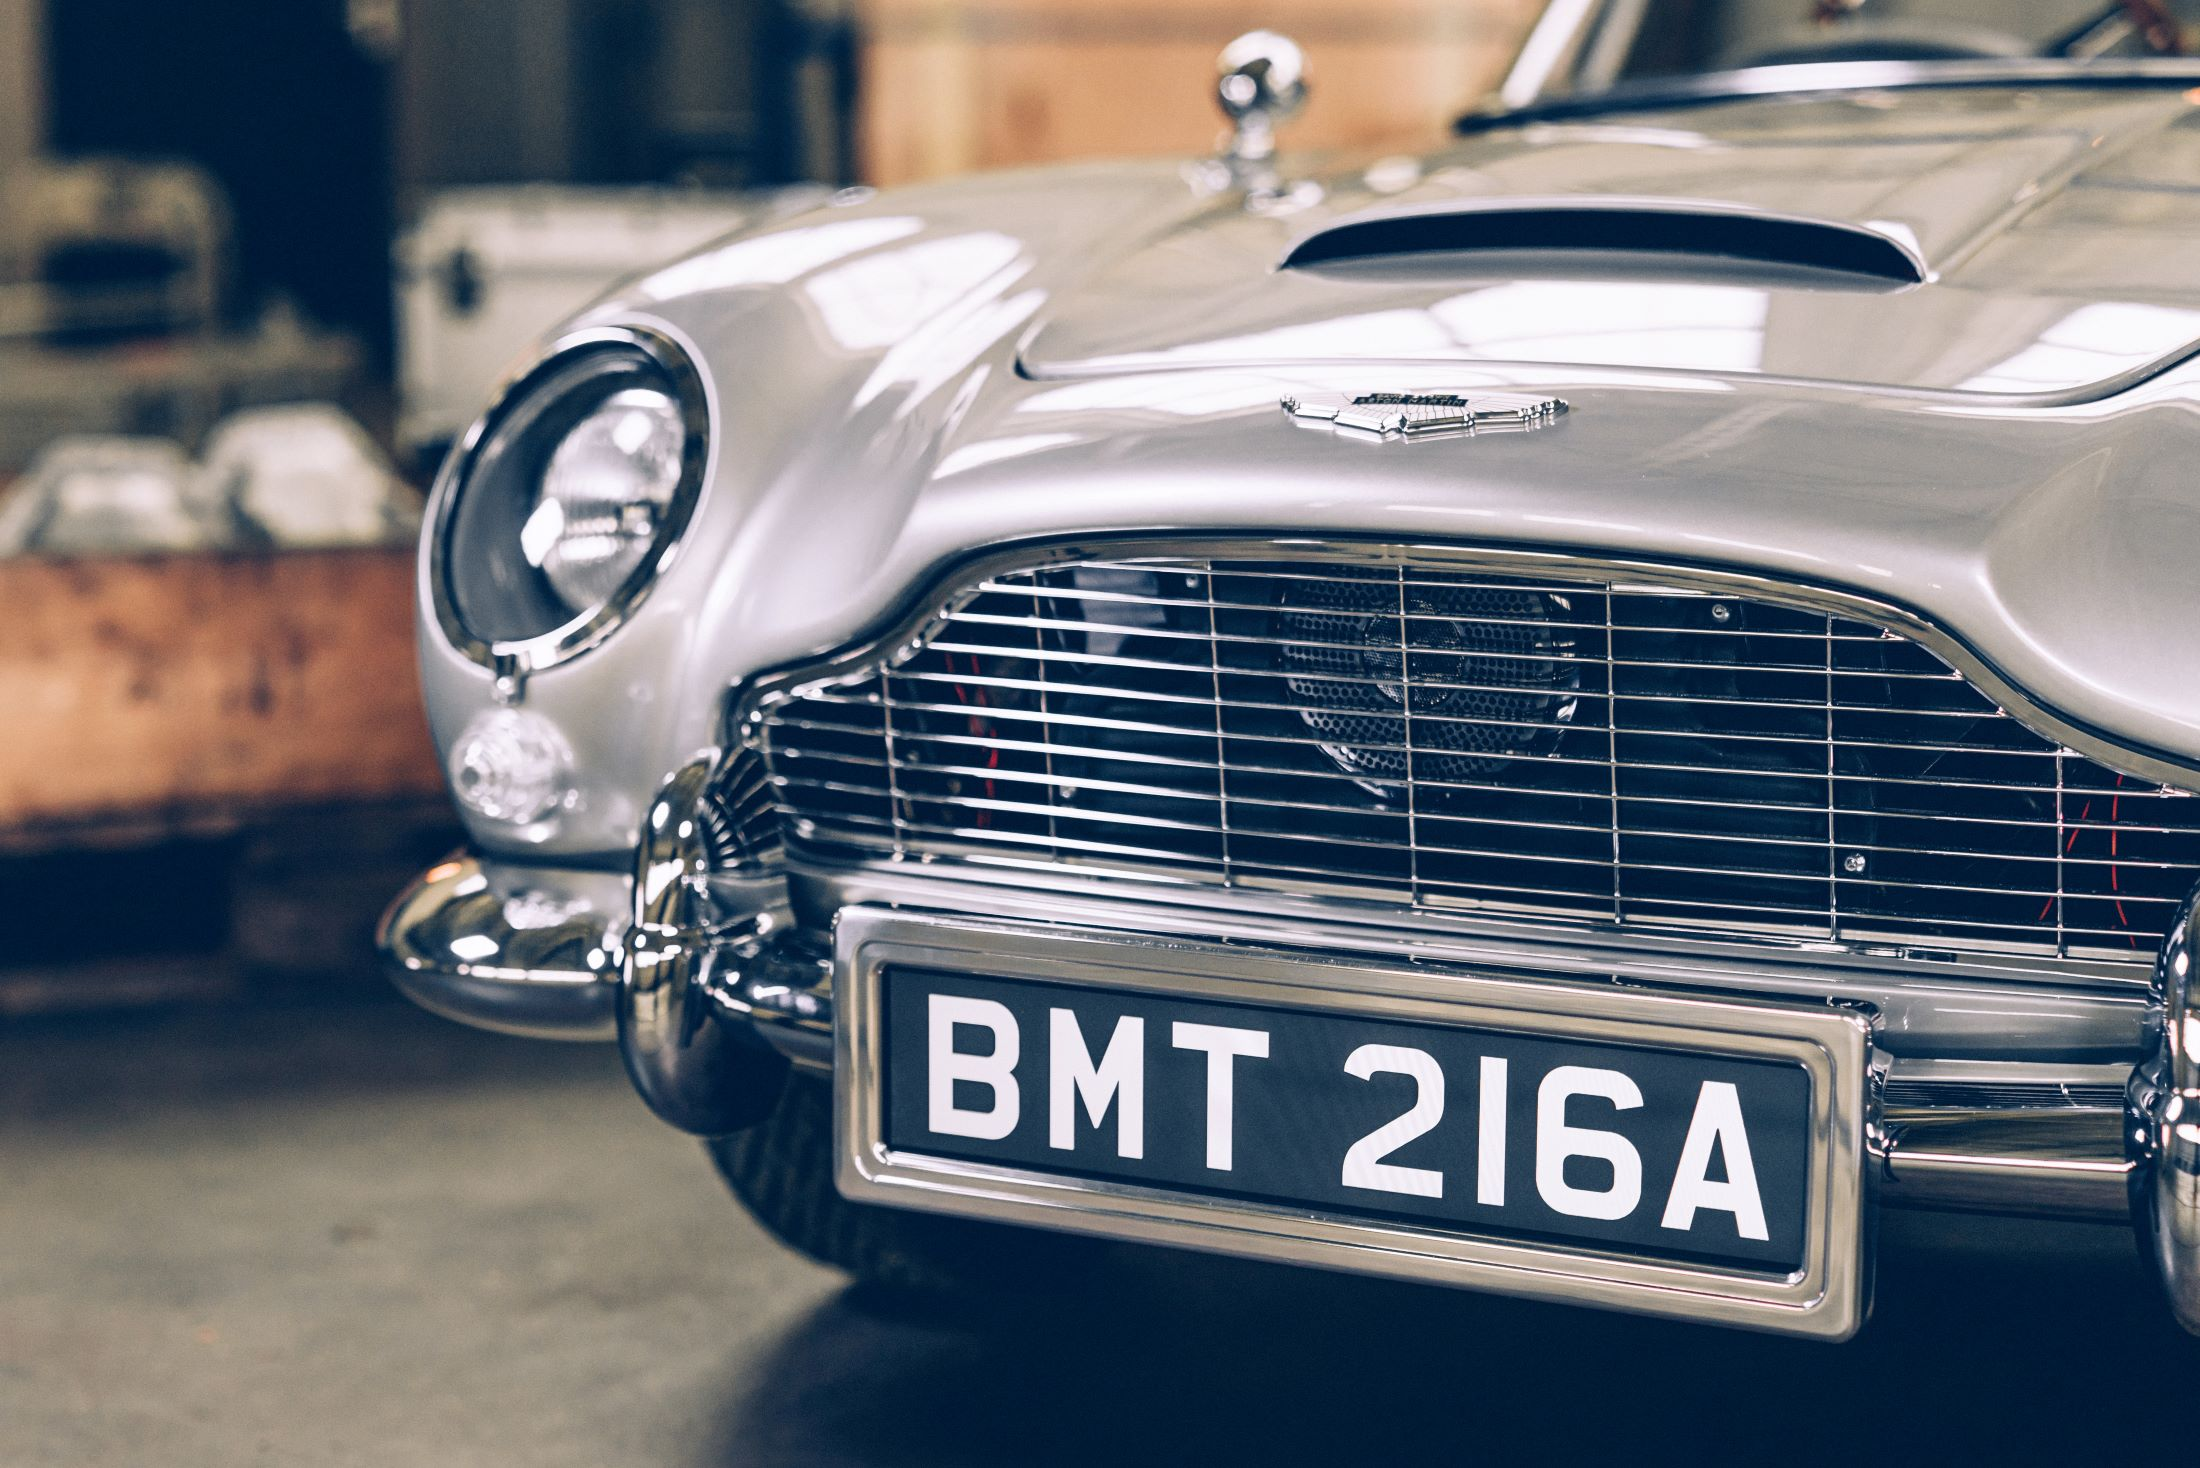 Bond Dreams Realized: Limited Edition Aston Martin DB5 2/3rds Replica Has All The Gadgets